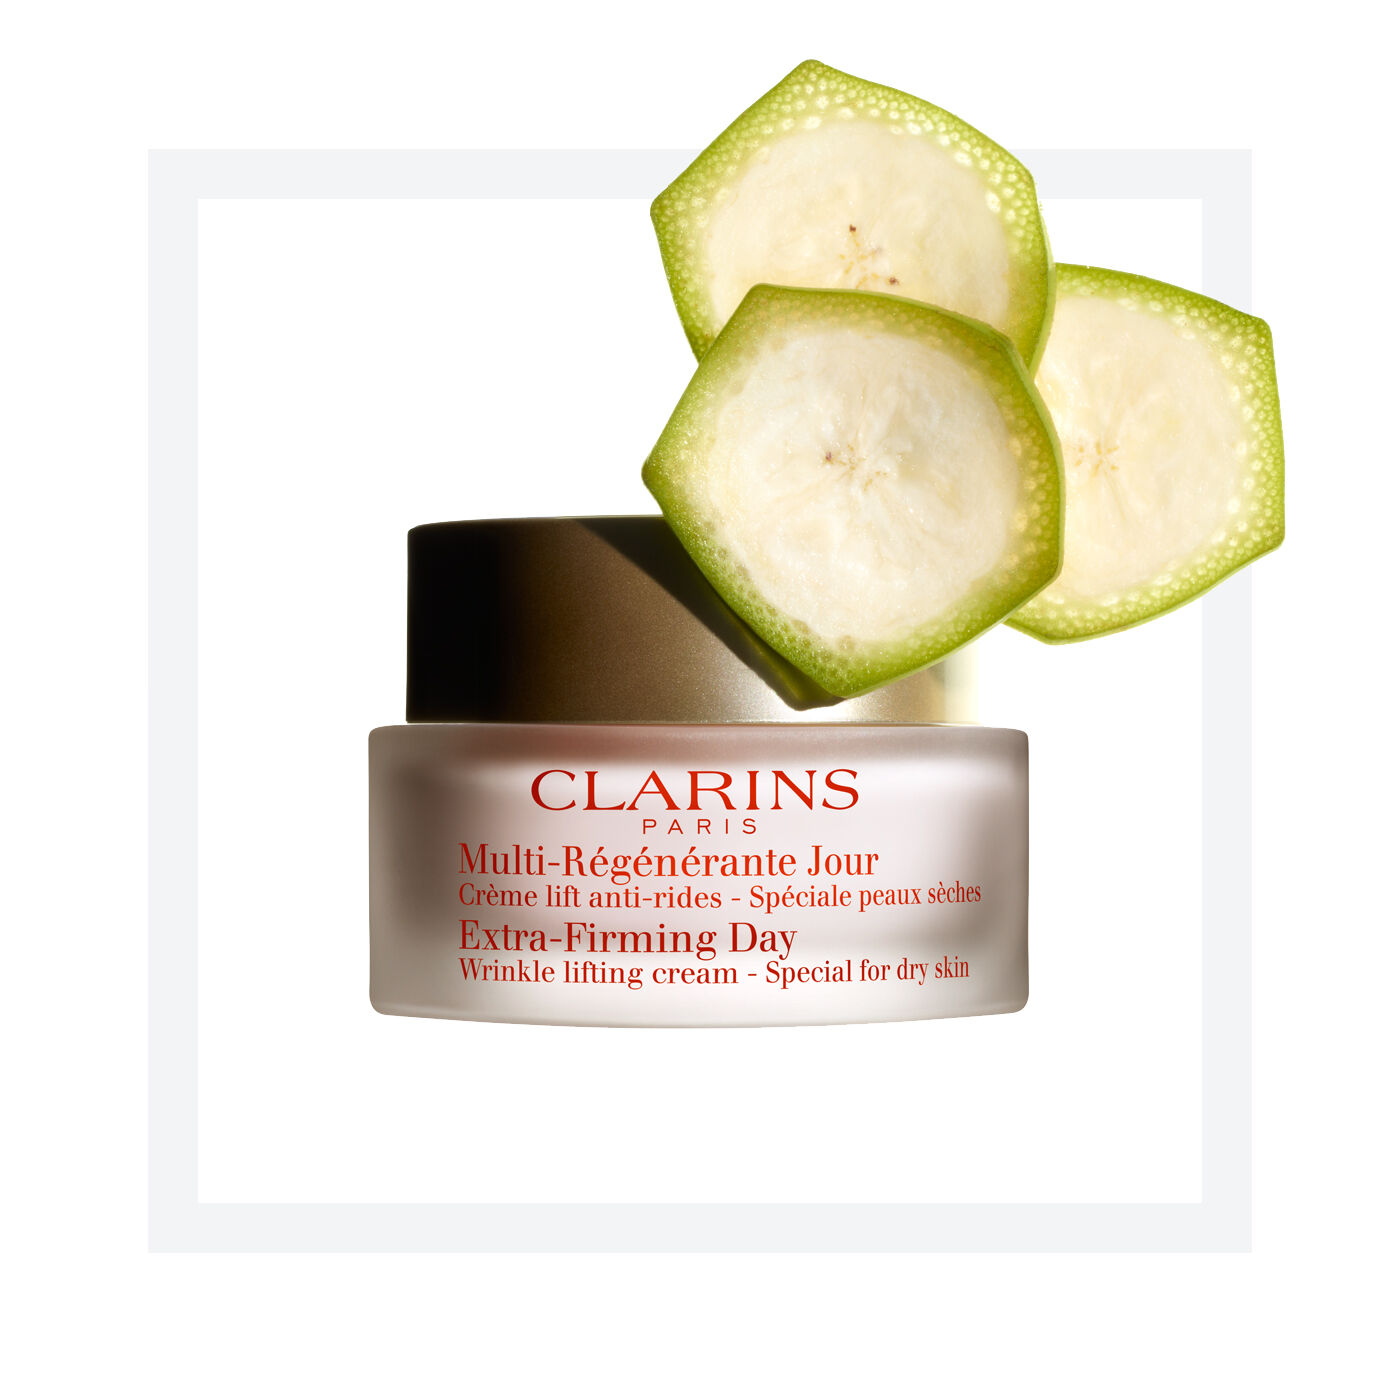 Extra-Firming Extra-Firming Day  - Special for dry skin